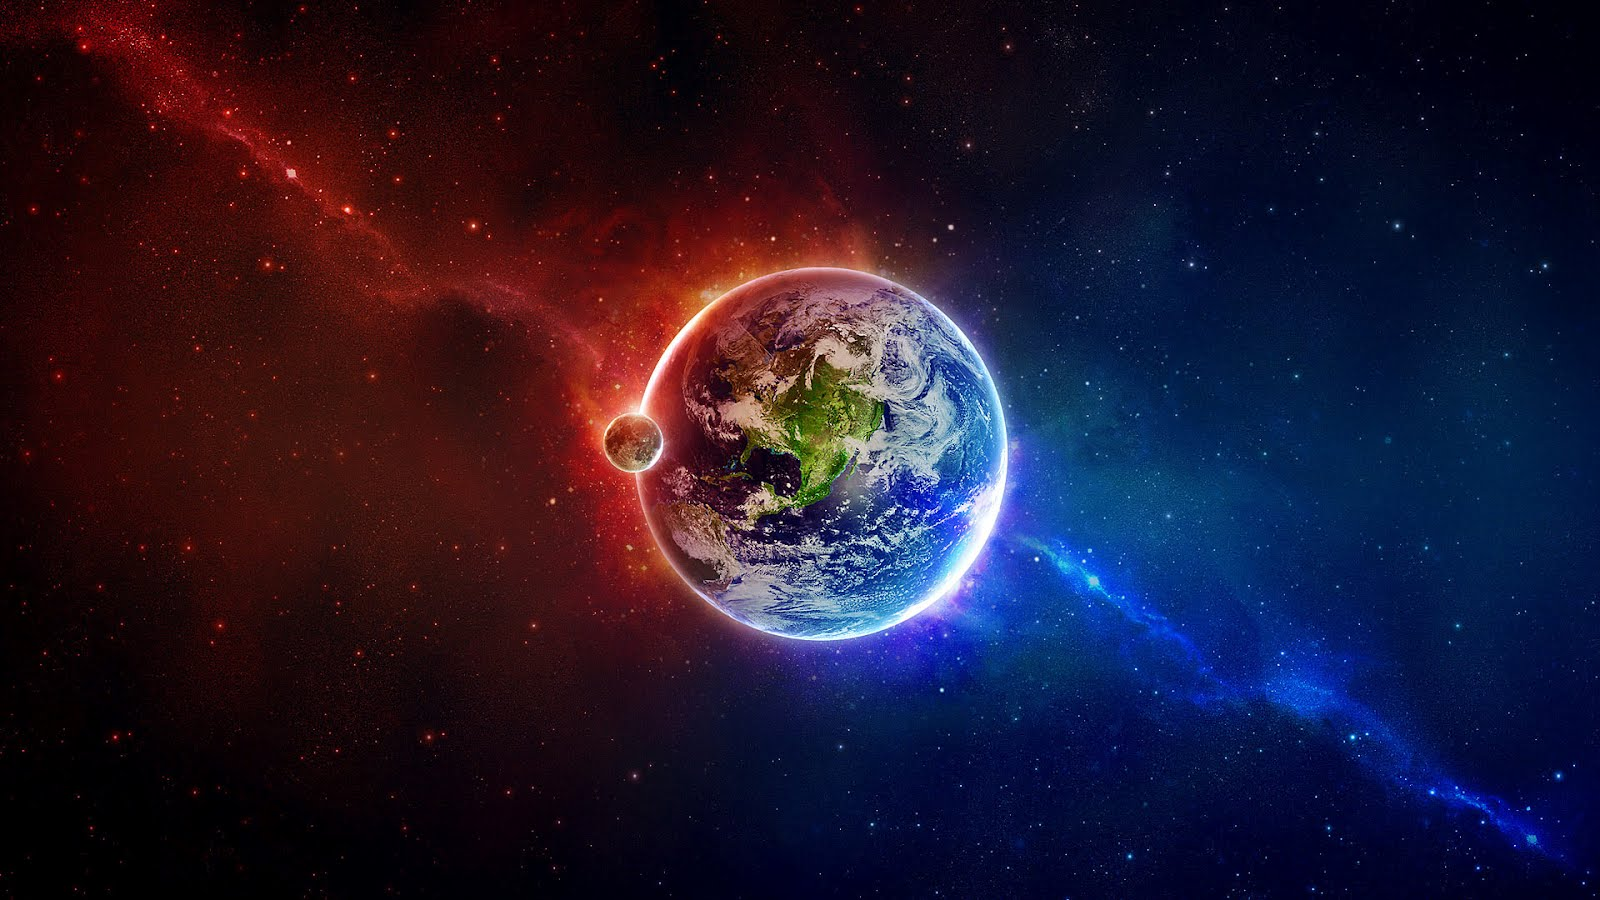 3d wallpapers 3d space scene wallpapers for 3d hd wallpapers